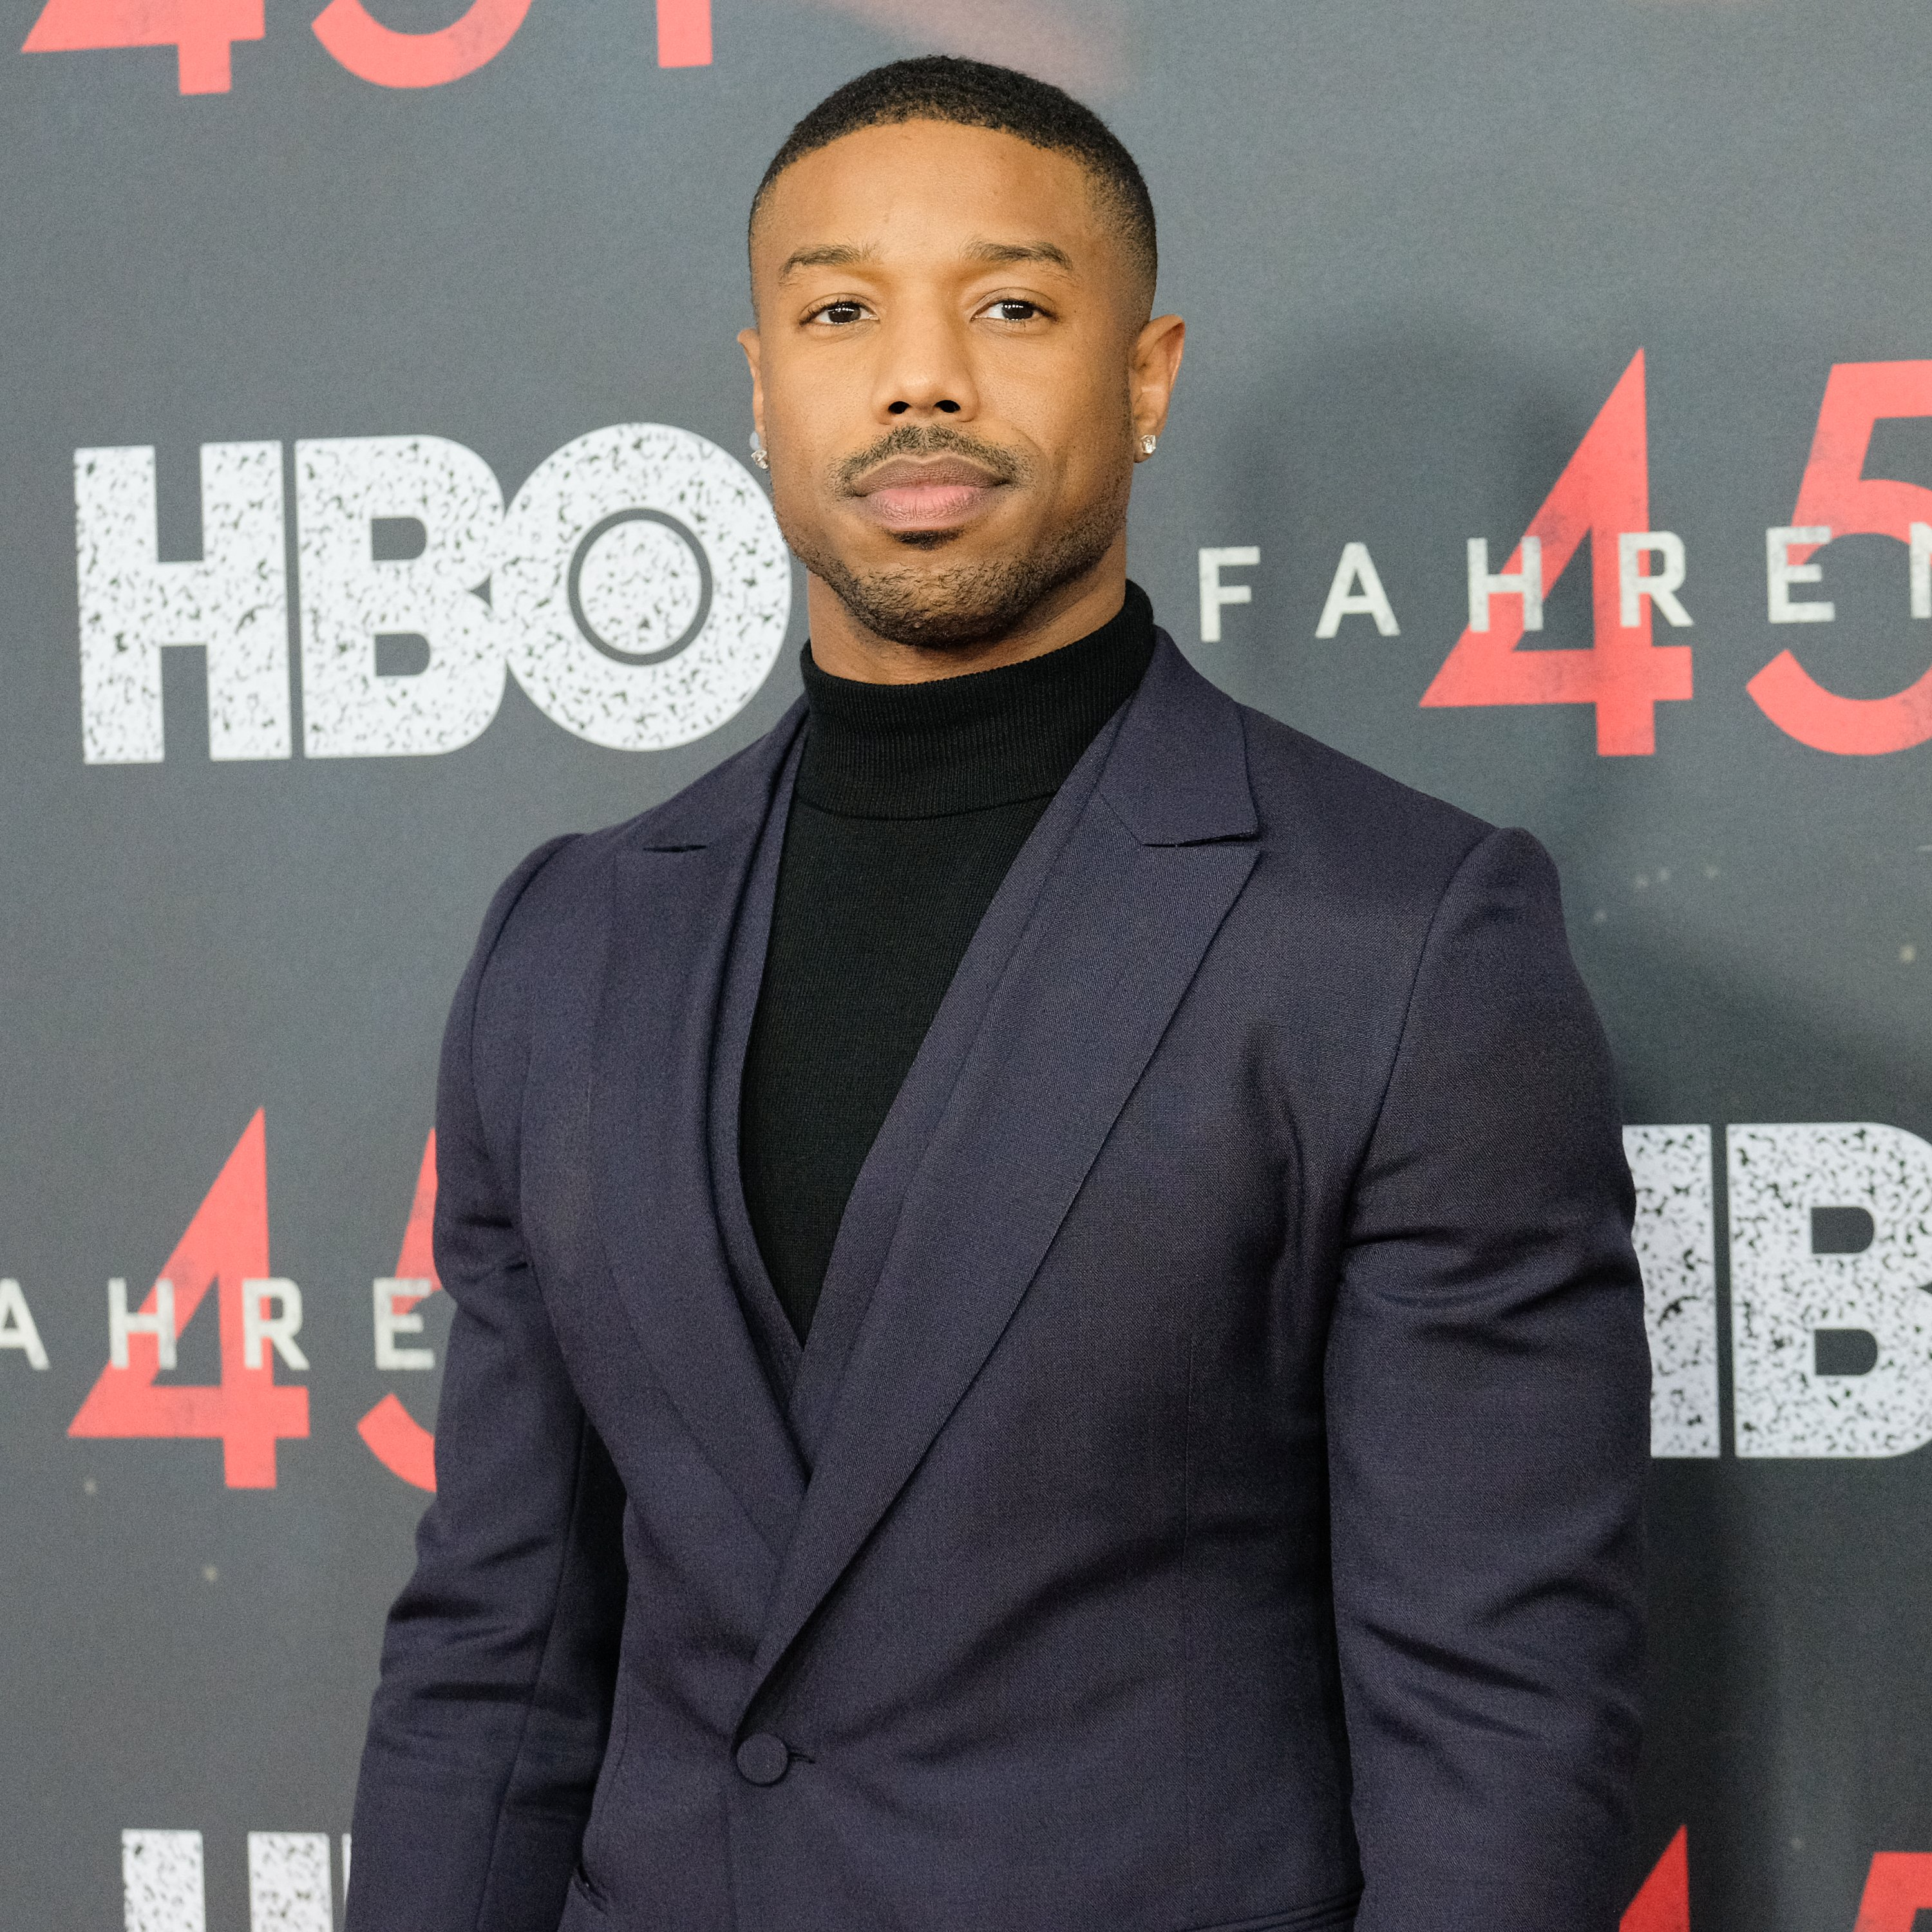 """Michael B. Jordan attends the """"Fahrenheit 451"""" New York Premiere on May 8, 2018, in New York City.   Source: Getty Images."""